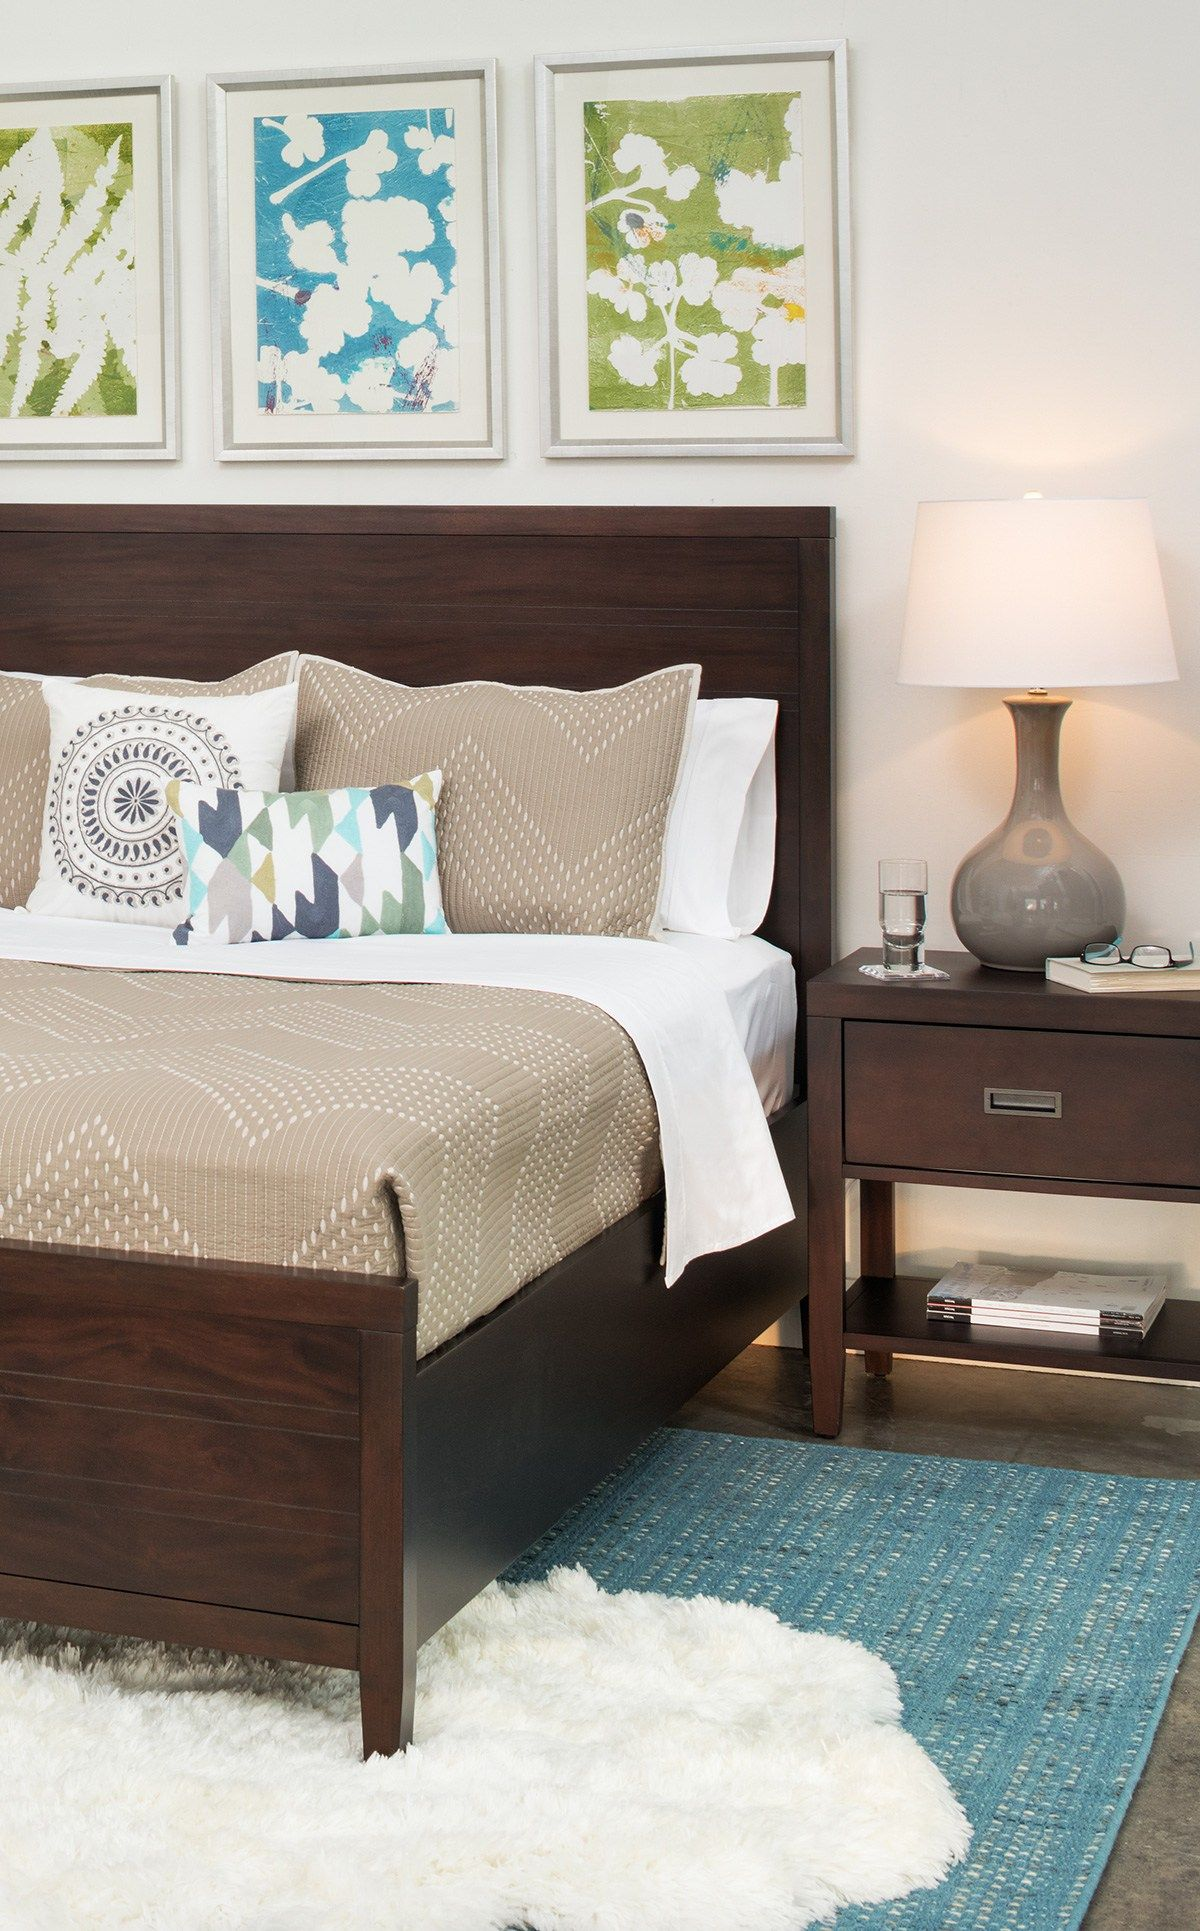 Master Bedroom With Layered Area Rugs For Added Comfort